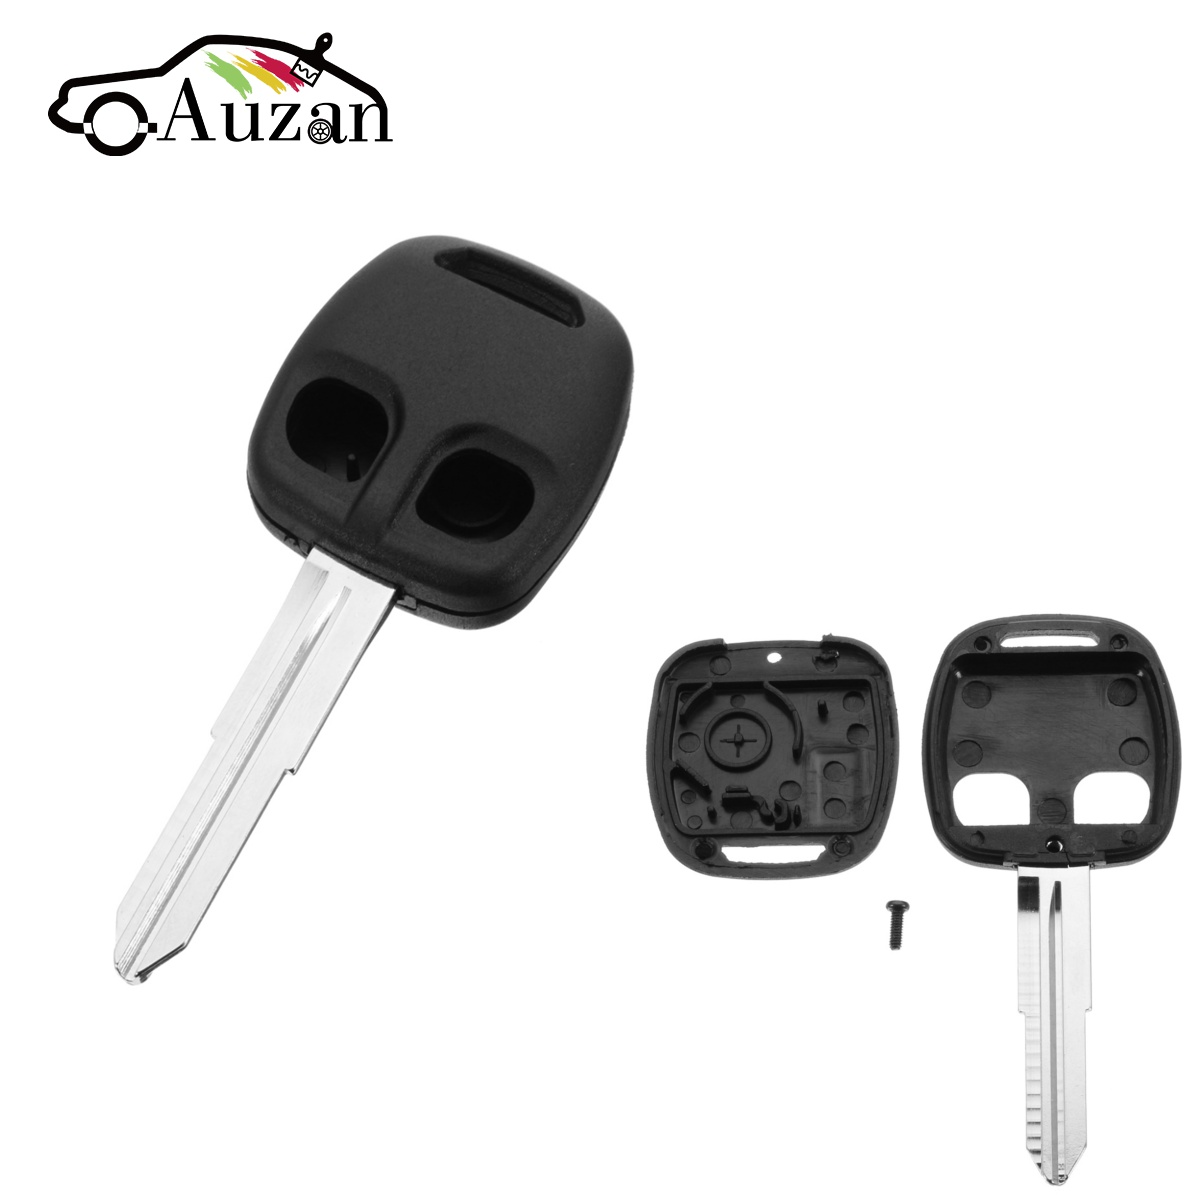 2 Button Car Remote <font><b>Key</b></font> Shell MIT11R Blade Case Fob for <font><b>MITSUBISHI</b></font> Lancer Evo <font><b>L200</b></font> Shogun Pajero <font><b>Key</b></font> <font><b>Replacement</b></font> image